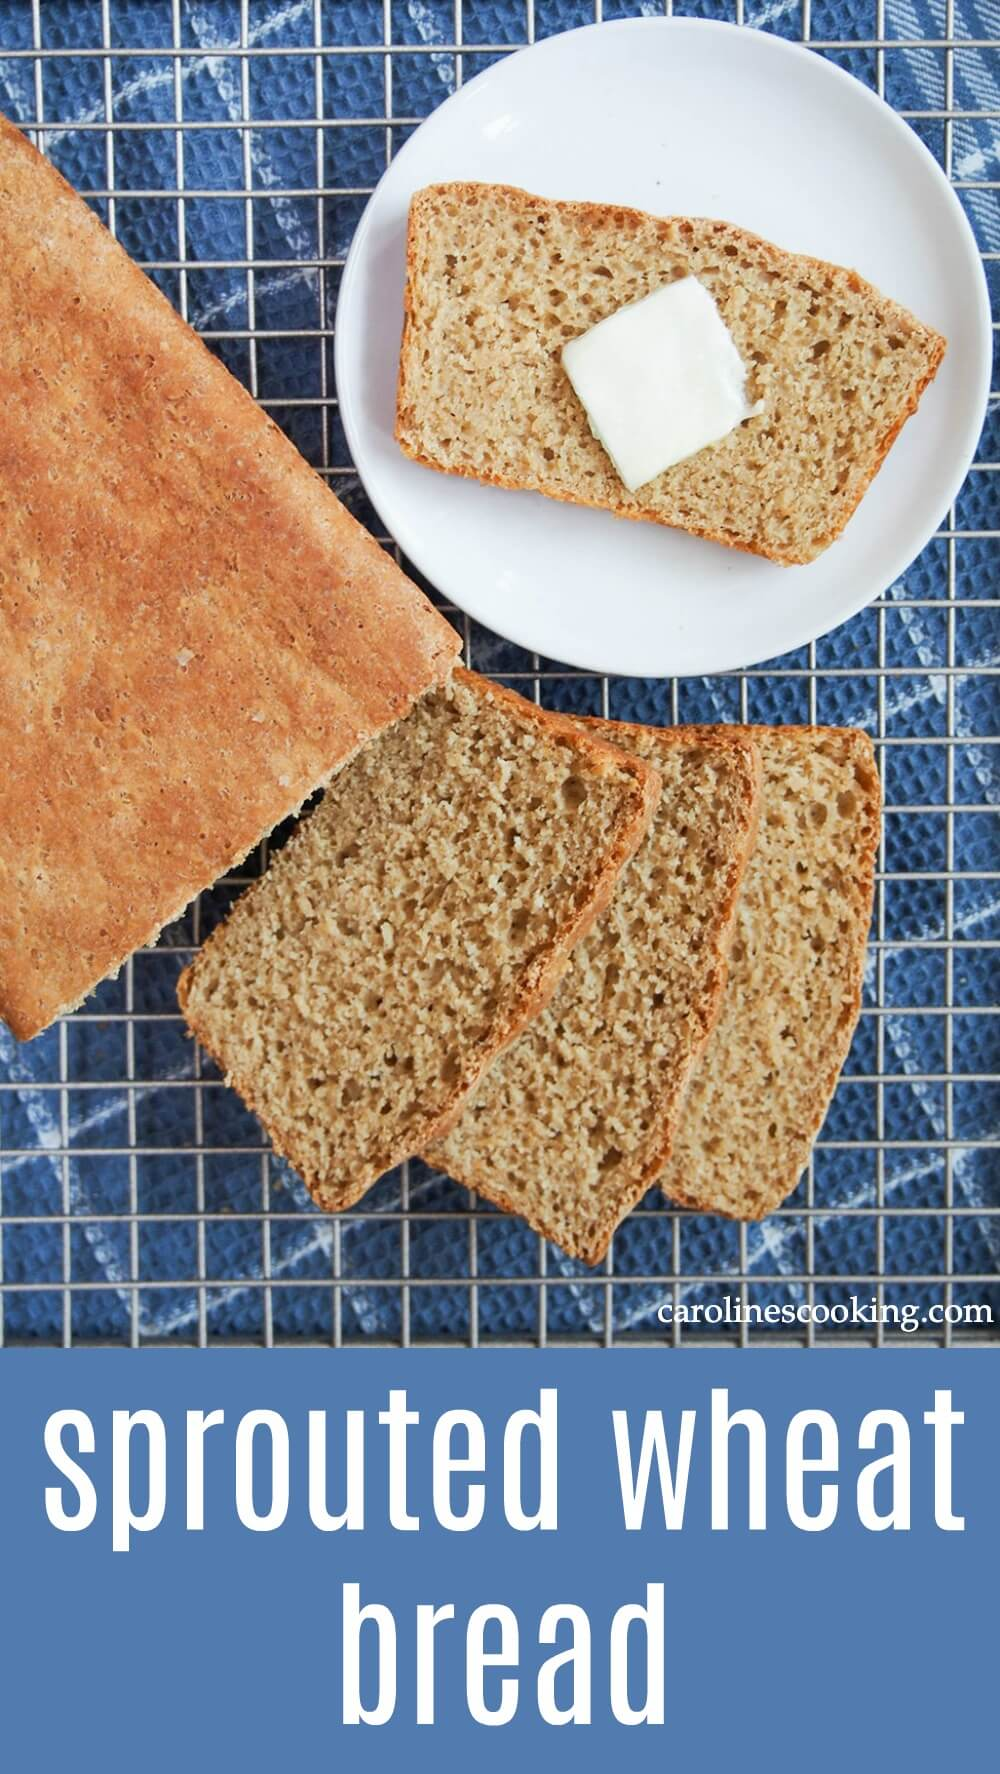 If you haven't heard of sprouted wheat bread, it's time to get familiar! This loaf is easy to make, tender with a slight almost nutty sweetness. And it's packed with goodness too! A great introduction to baking with sprouted grains. #baking #bread